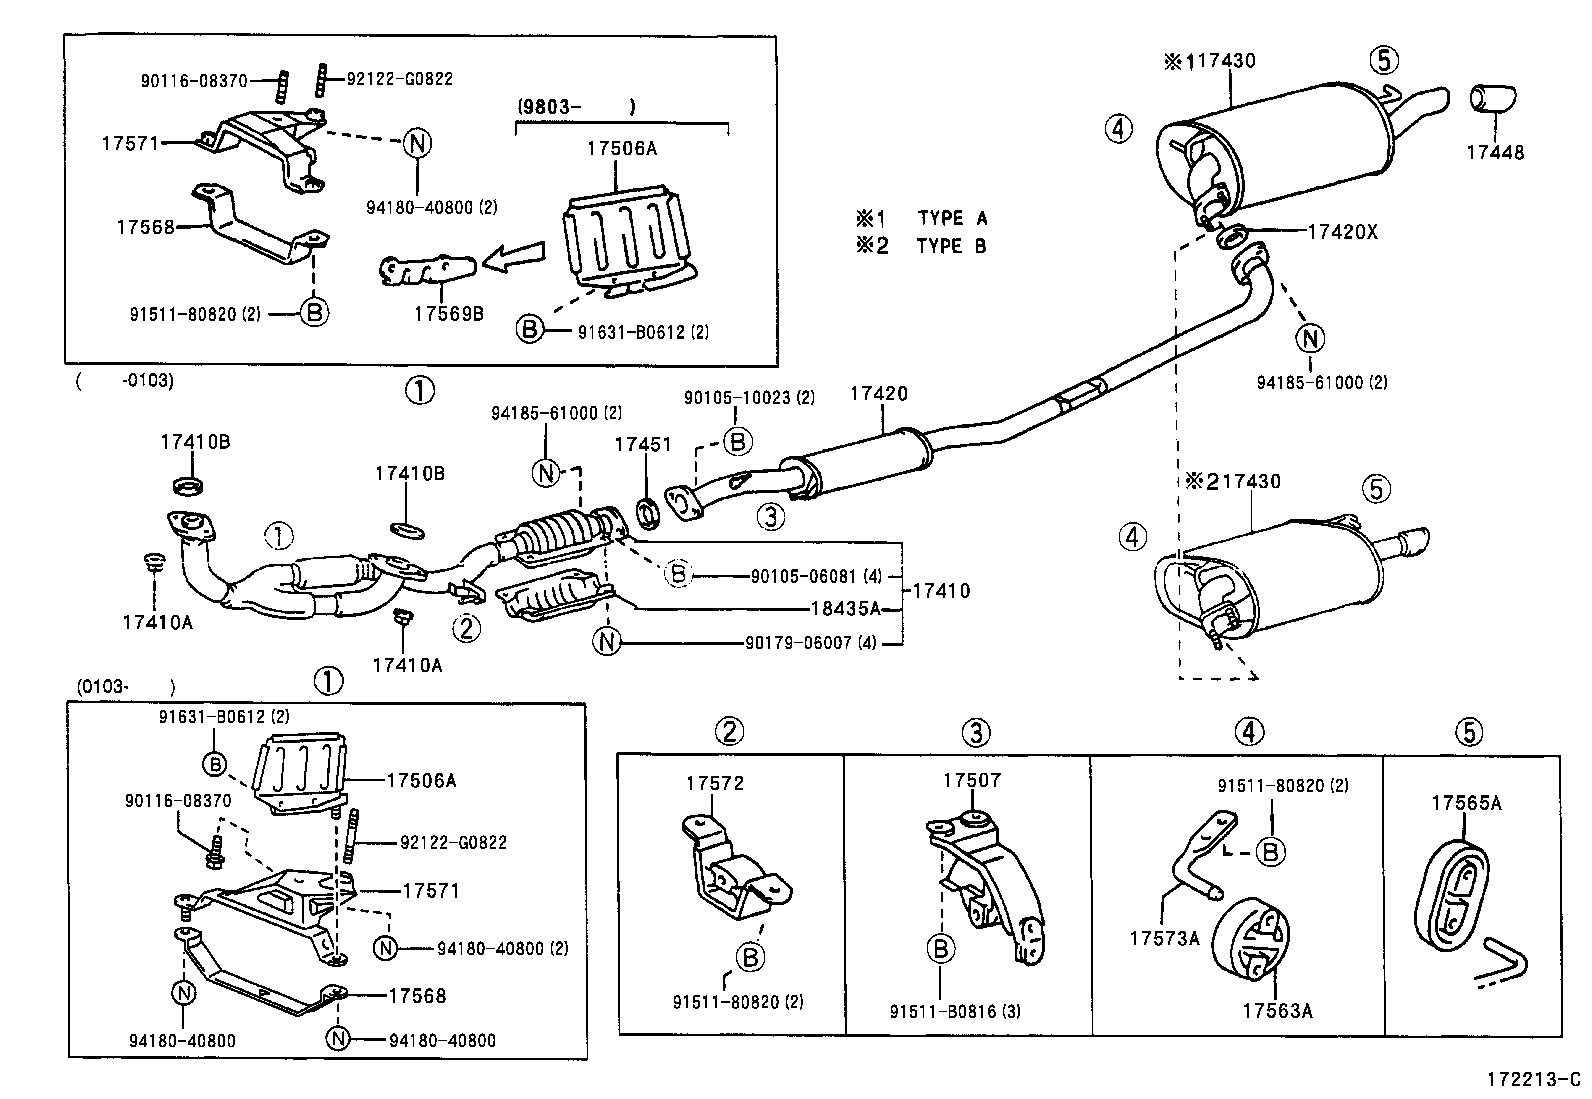 Mercedes E420 Fuse Box Diagram Mercedes Auto Fuse